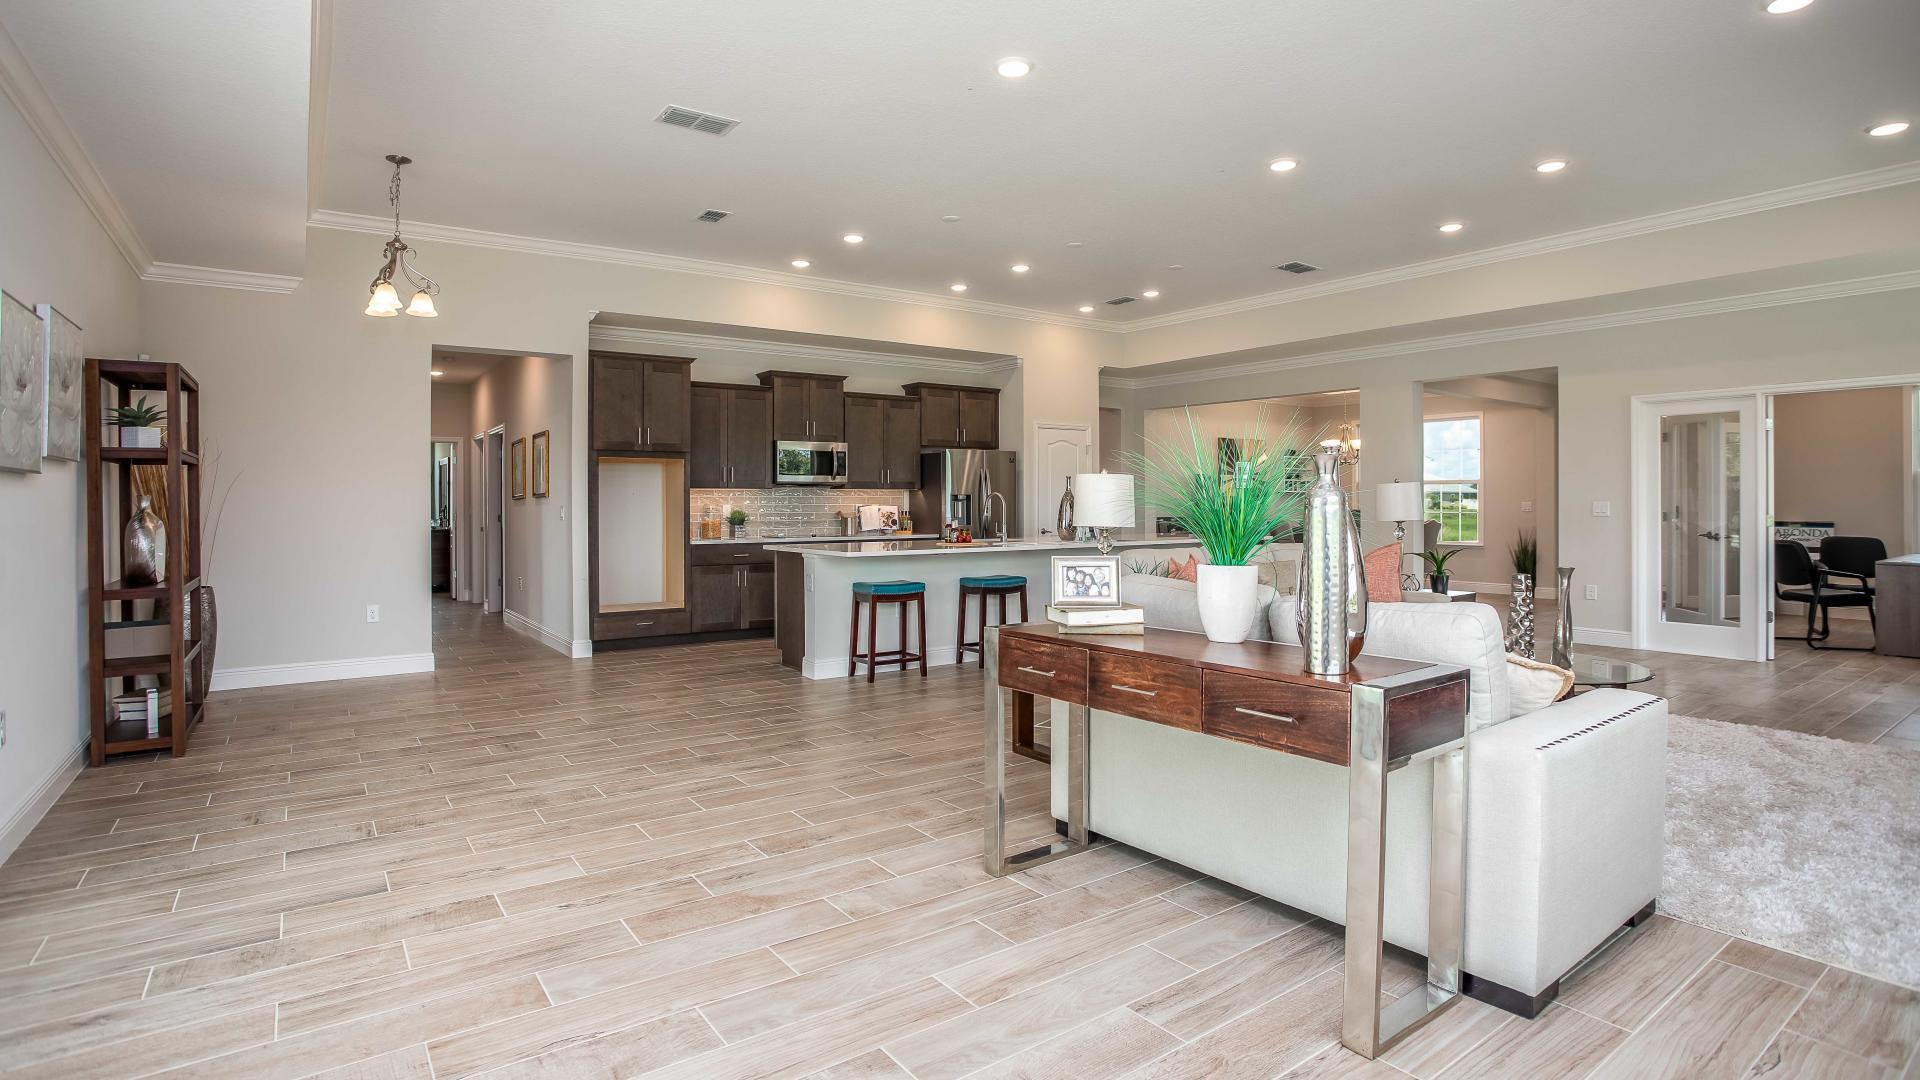 Living Area featured in the Sienna By Maronda Homes in Daytona Beach, FL